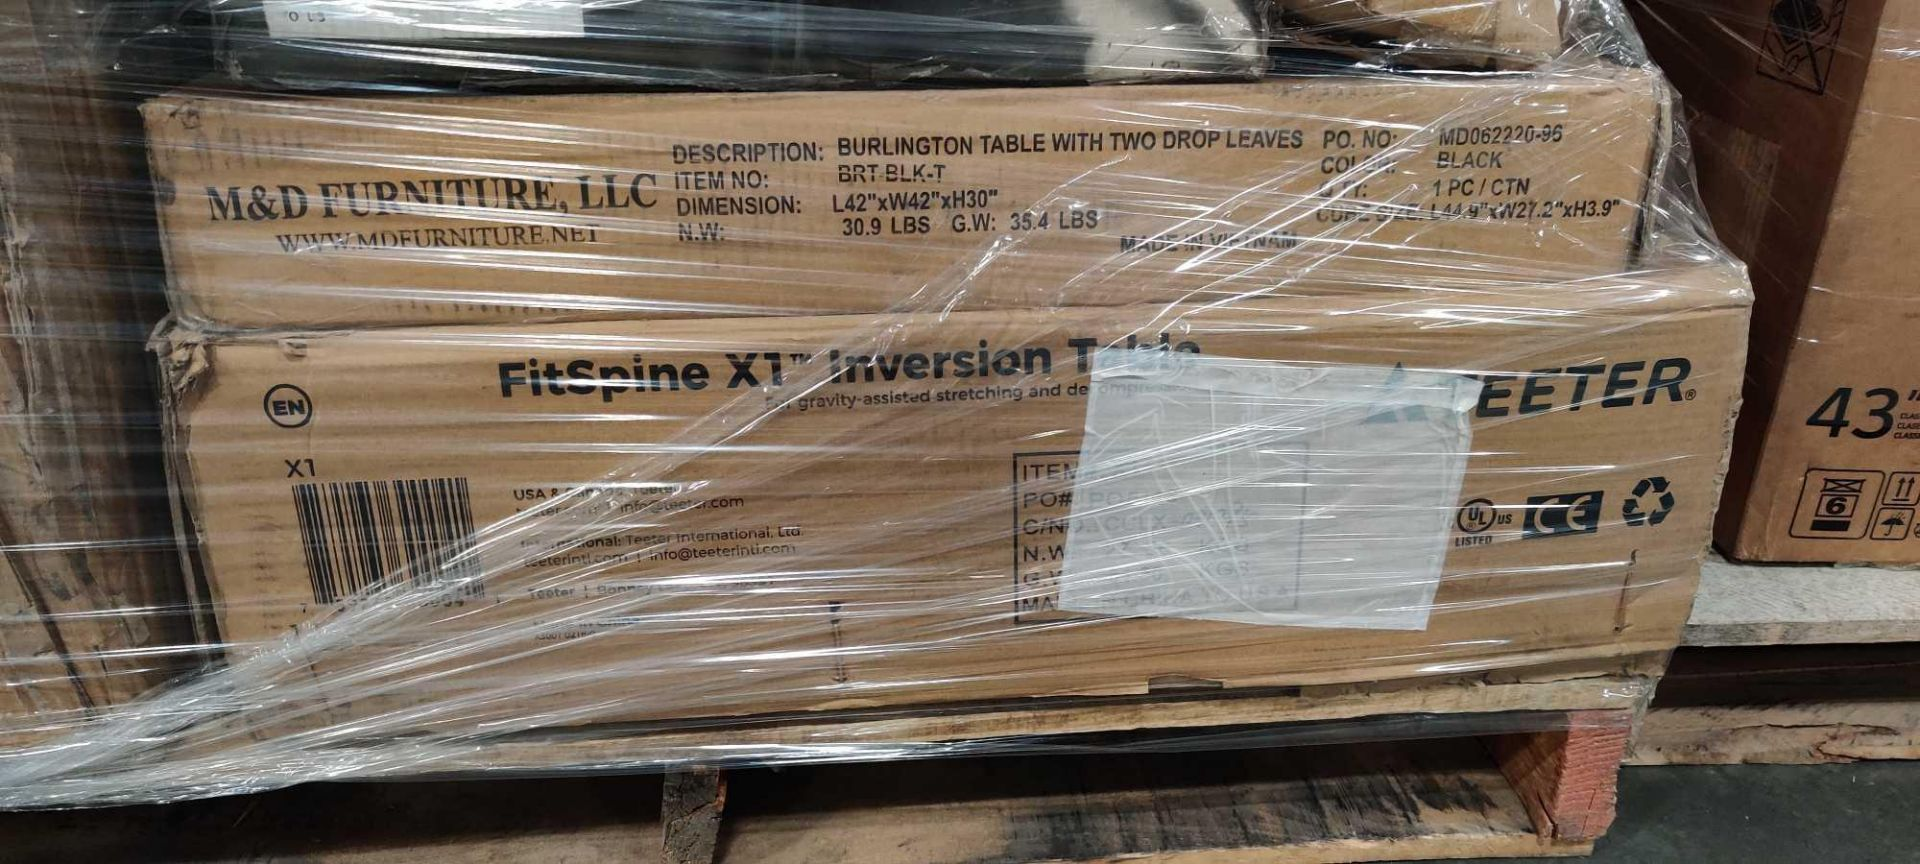 Two Pallets - Image 19 of 22